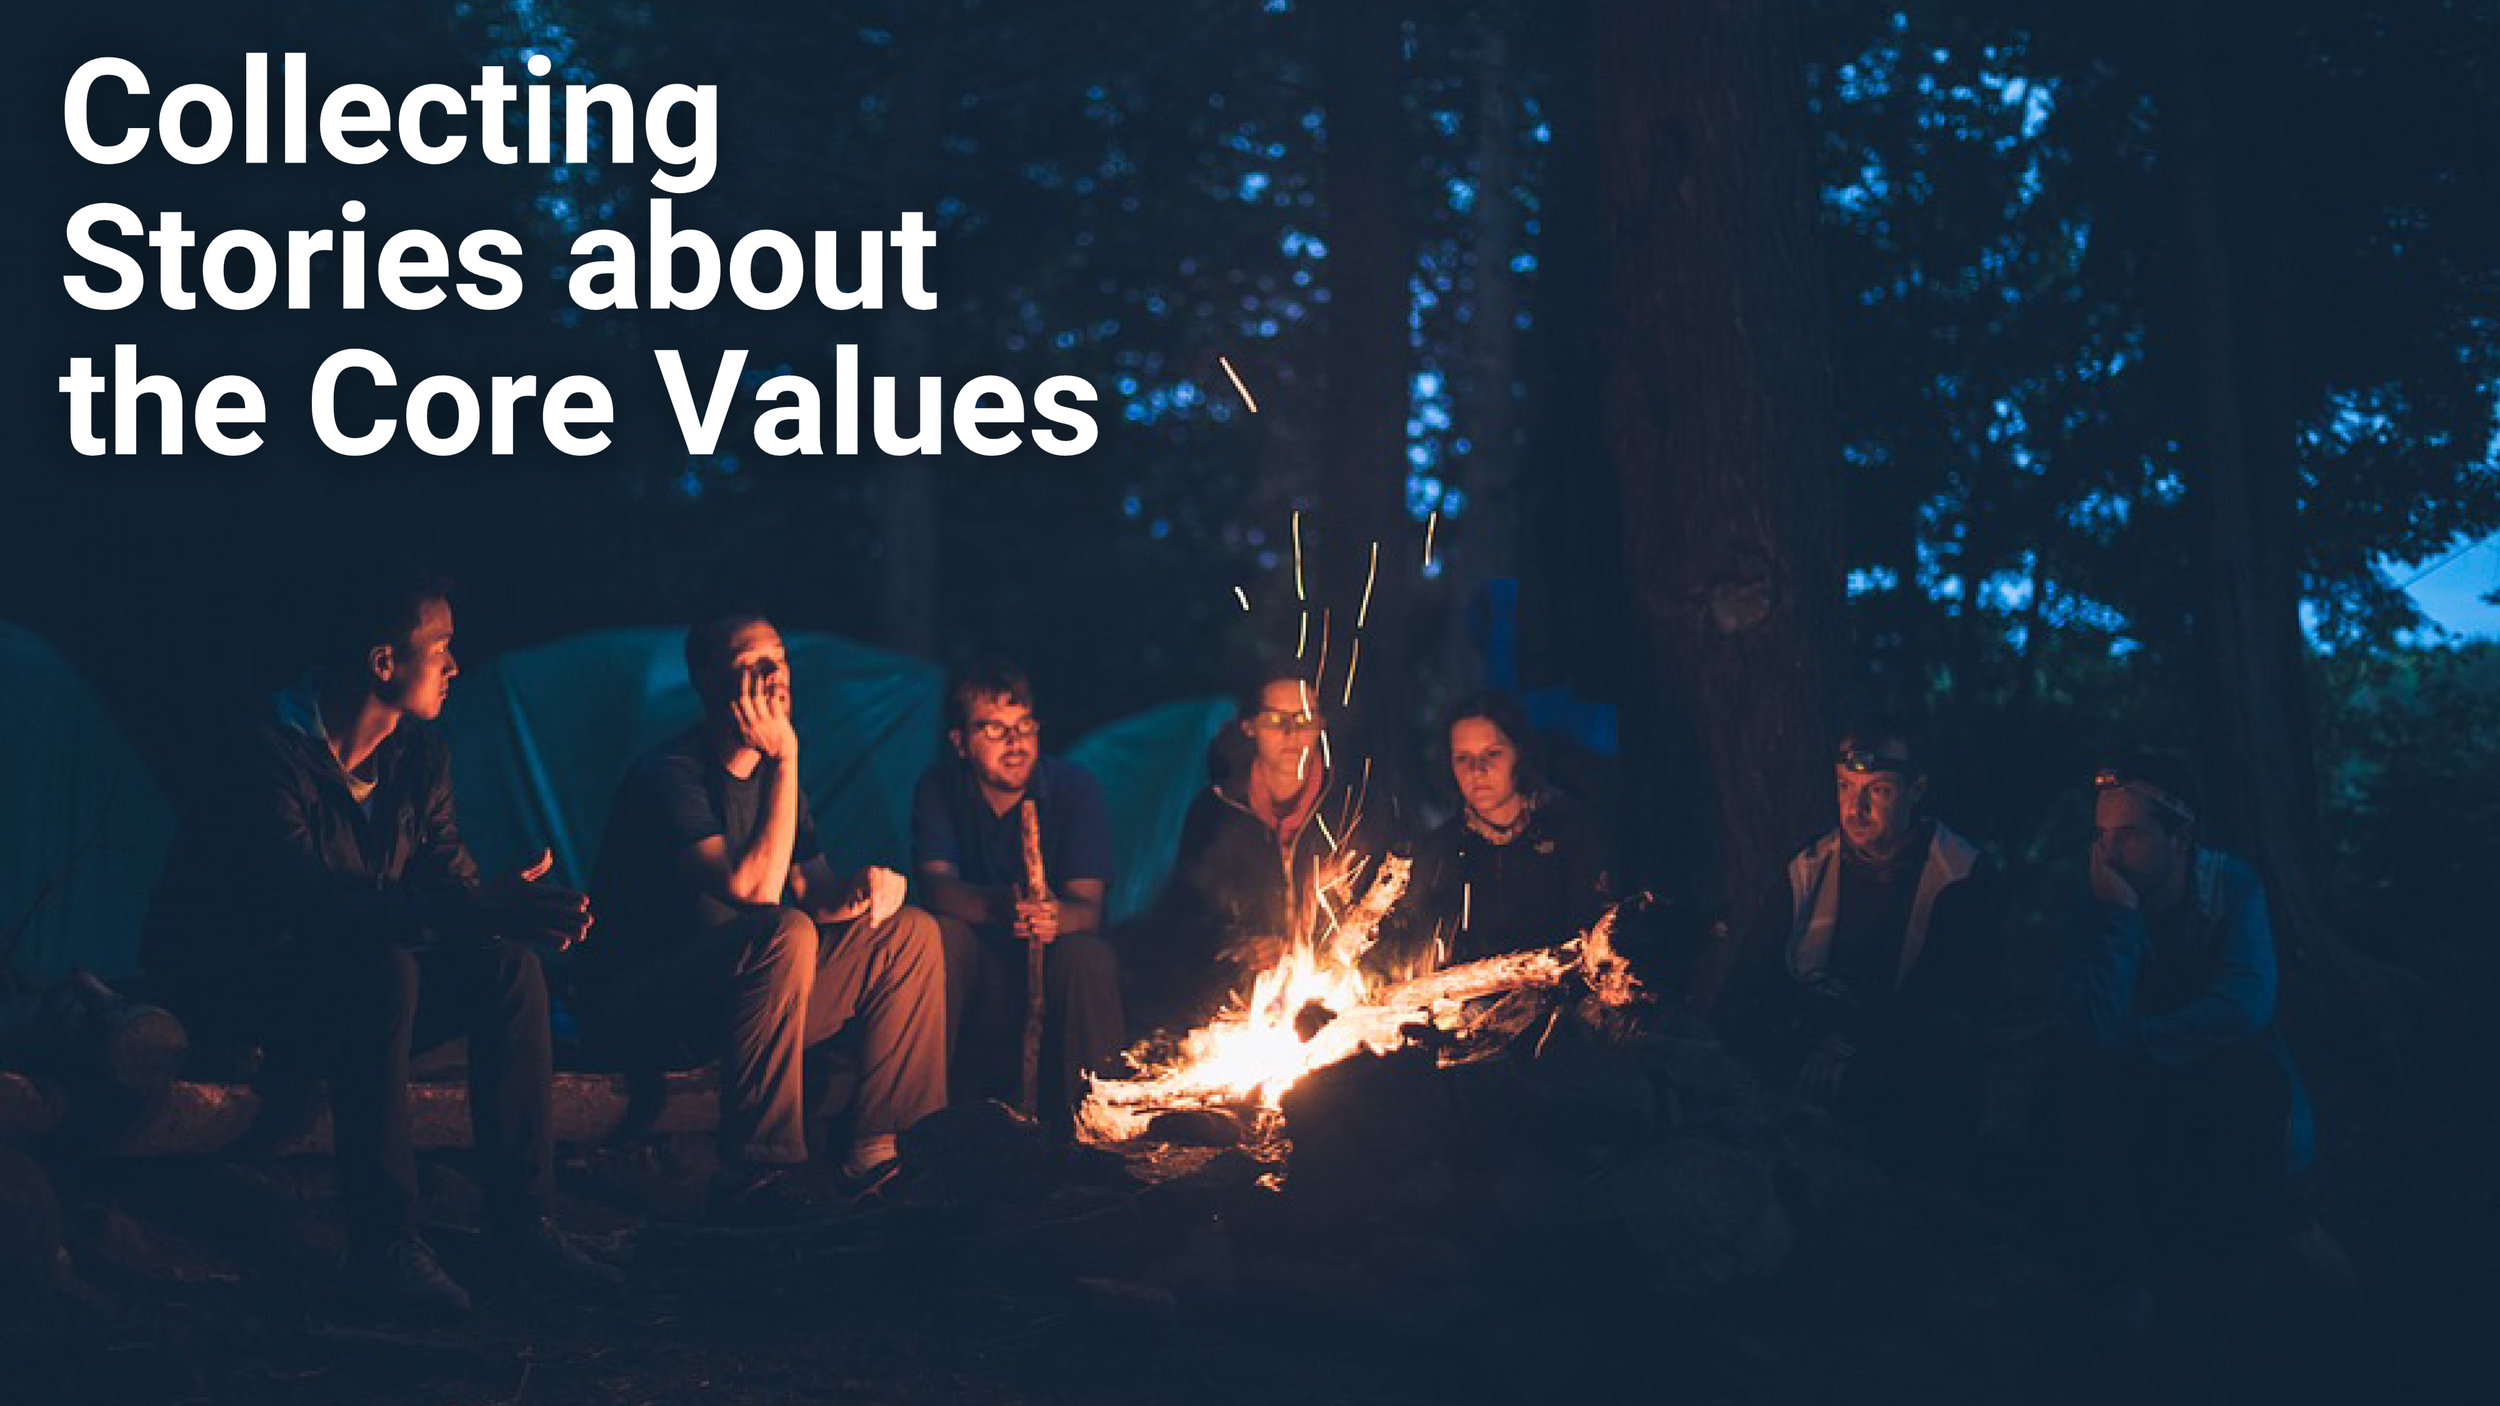 096_Establishing your Core Values_Shared Principles_Page_5.jpg